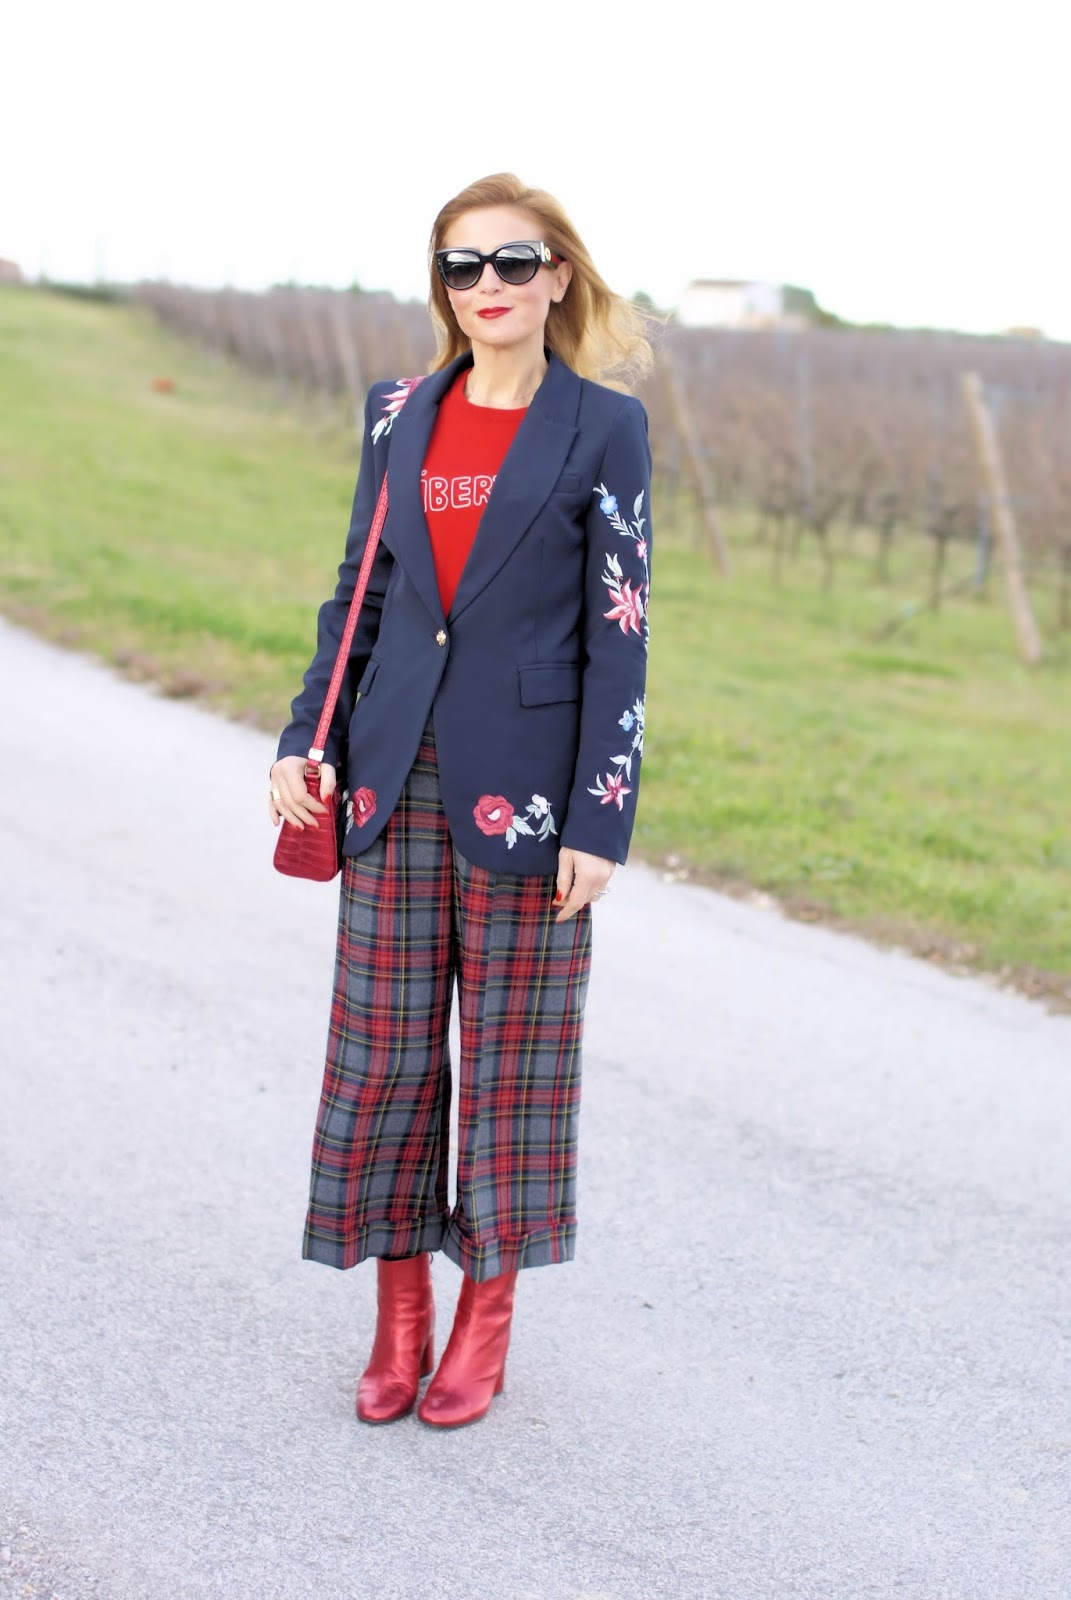 Welcome, december, Zaful embroidered blazer and plaid pants on Fashion and Cookies fashion blog, fashion blogger style